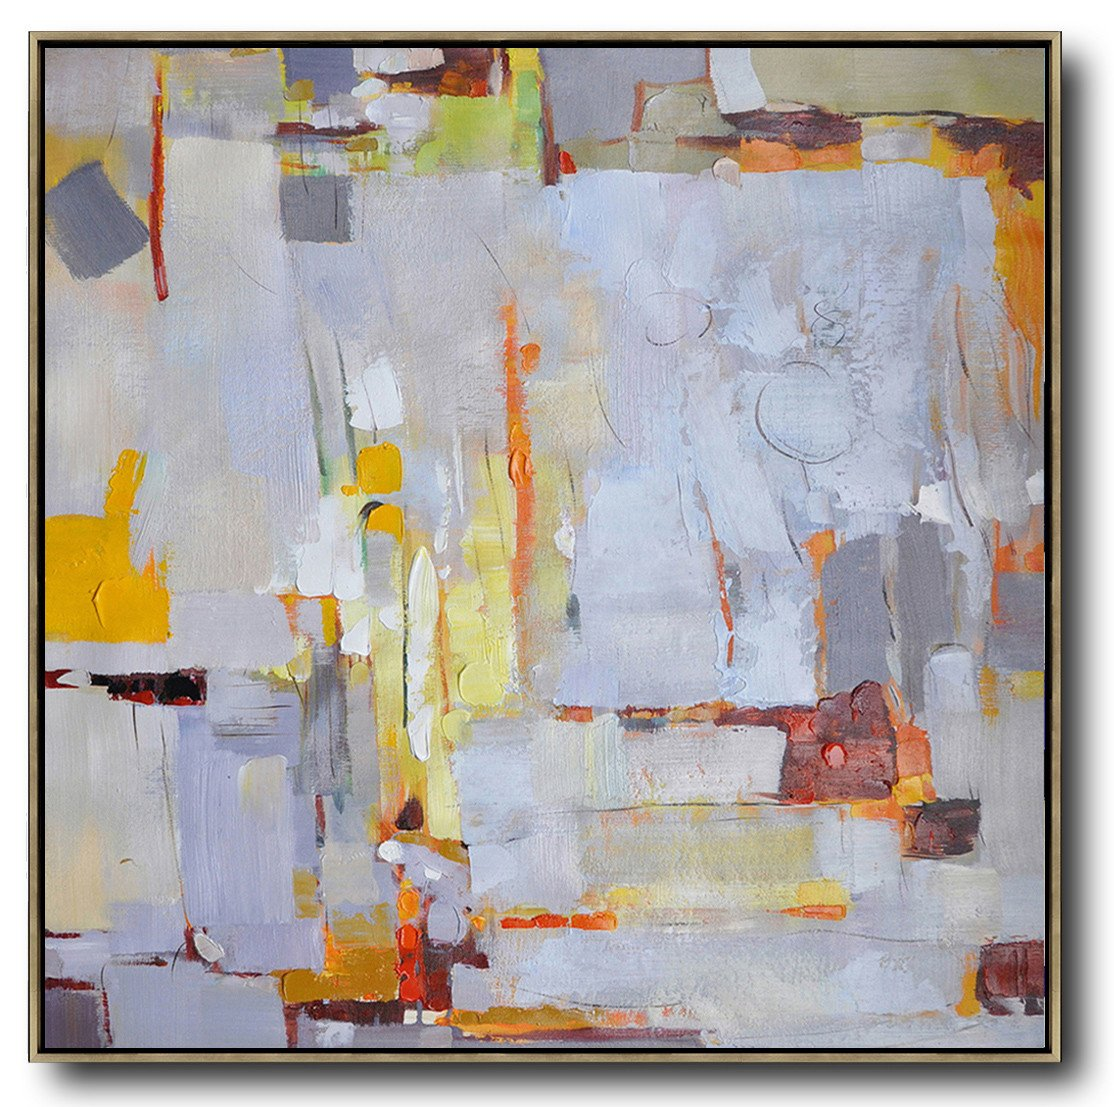 Large Modern Abstract Painting,Oversized Contemporary Art,Acrylic On Canvas Abstract,Violet Ash,Yellow,Red,Orange.etc